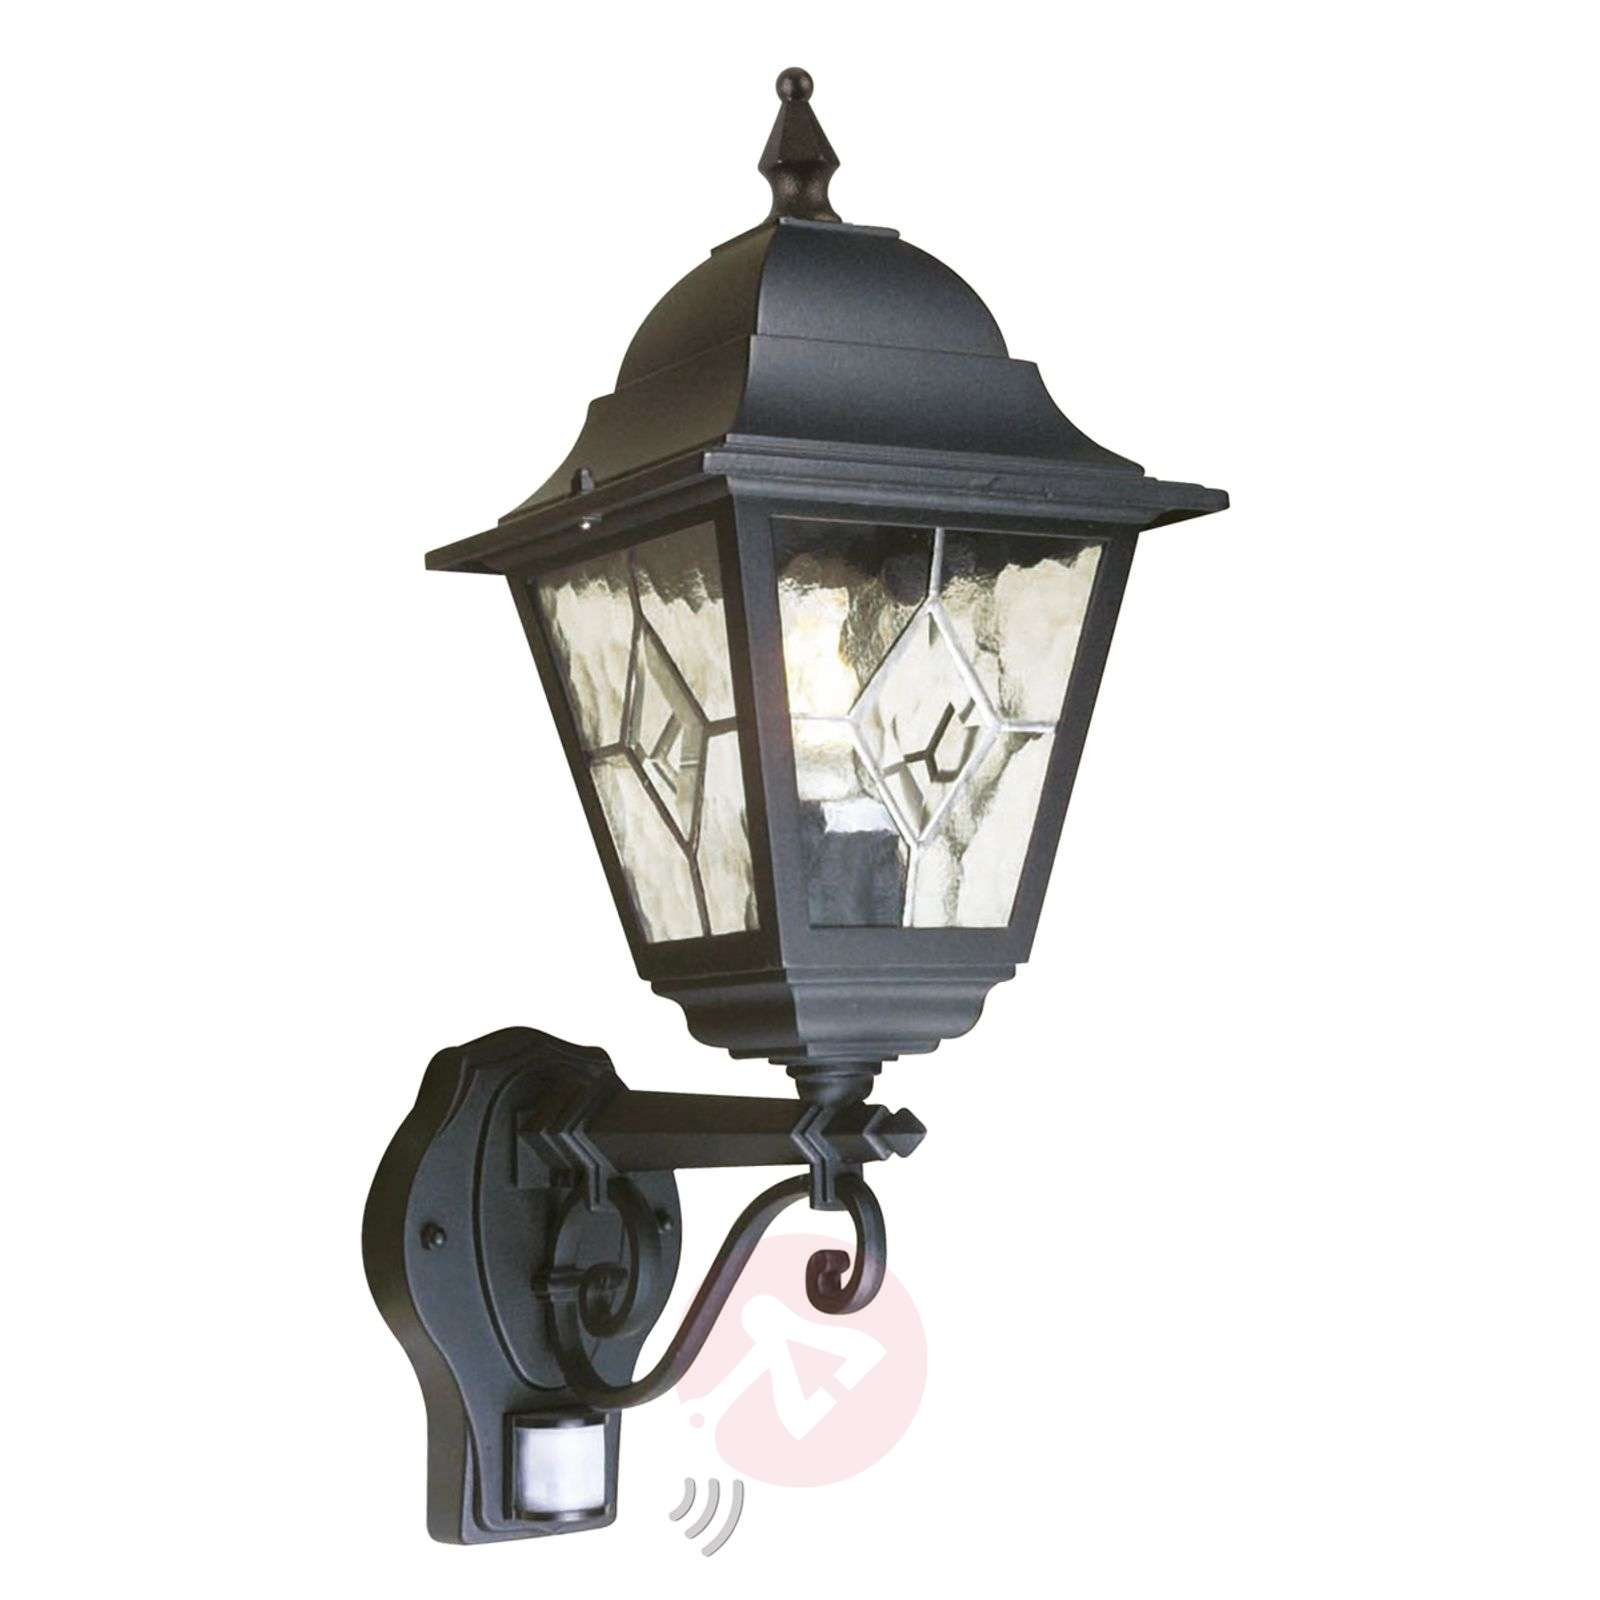 Norfolk outdoor wall lamp with motion detector-3048423-01